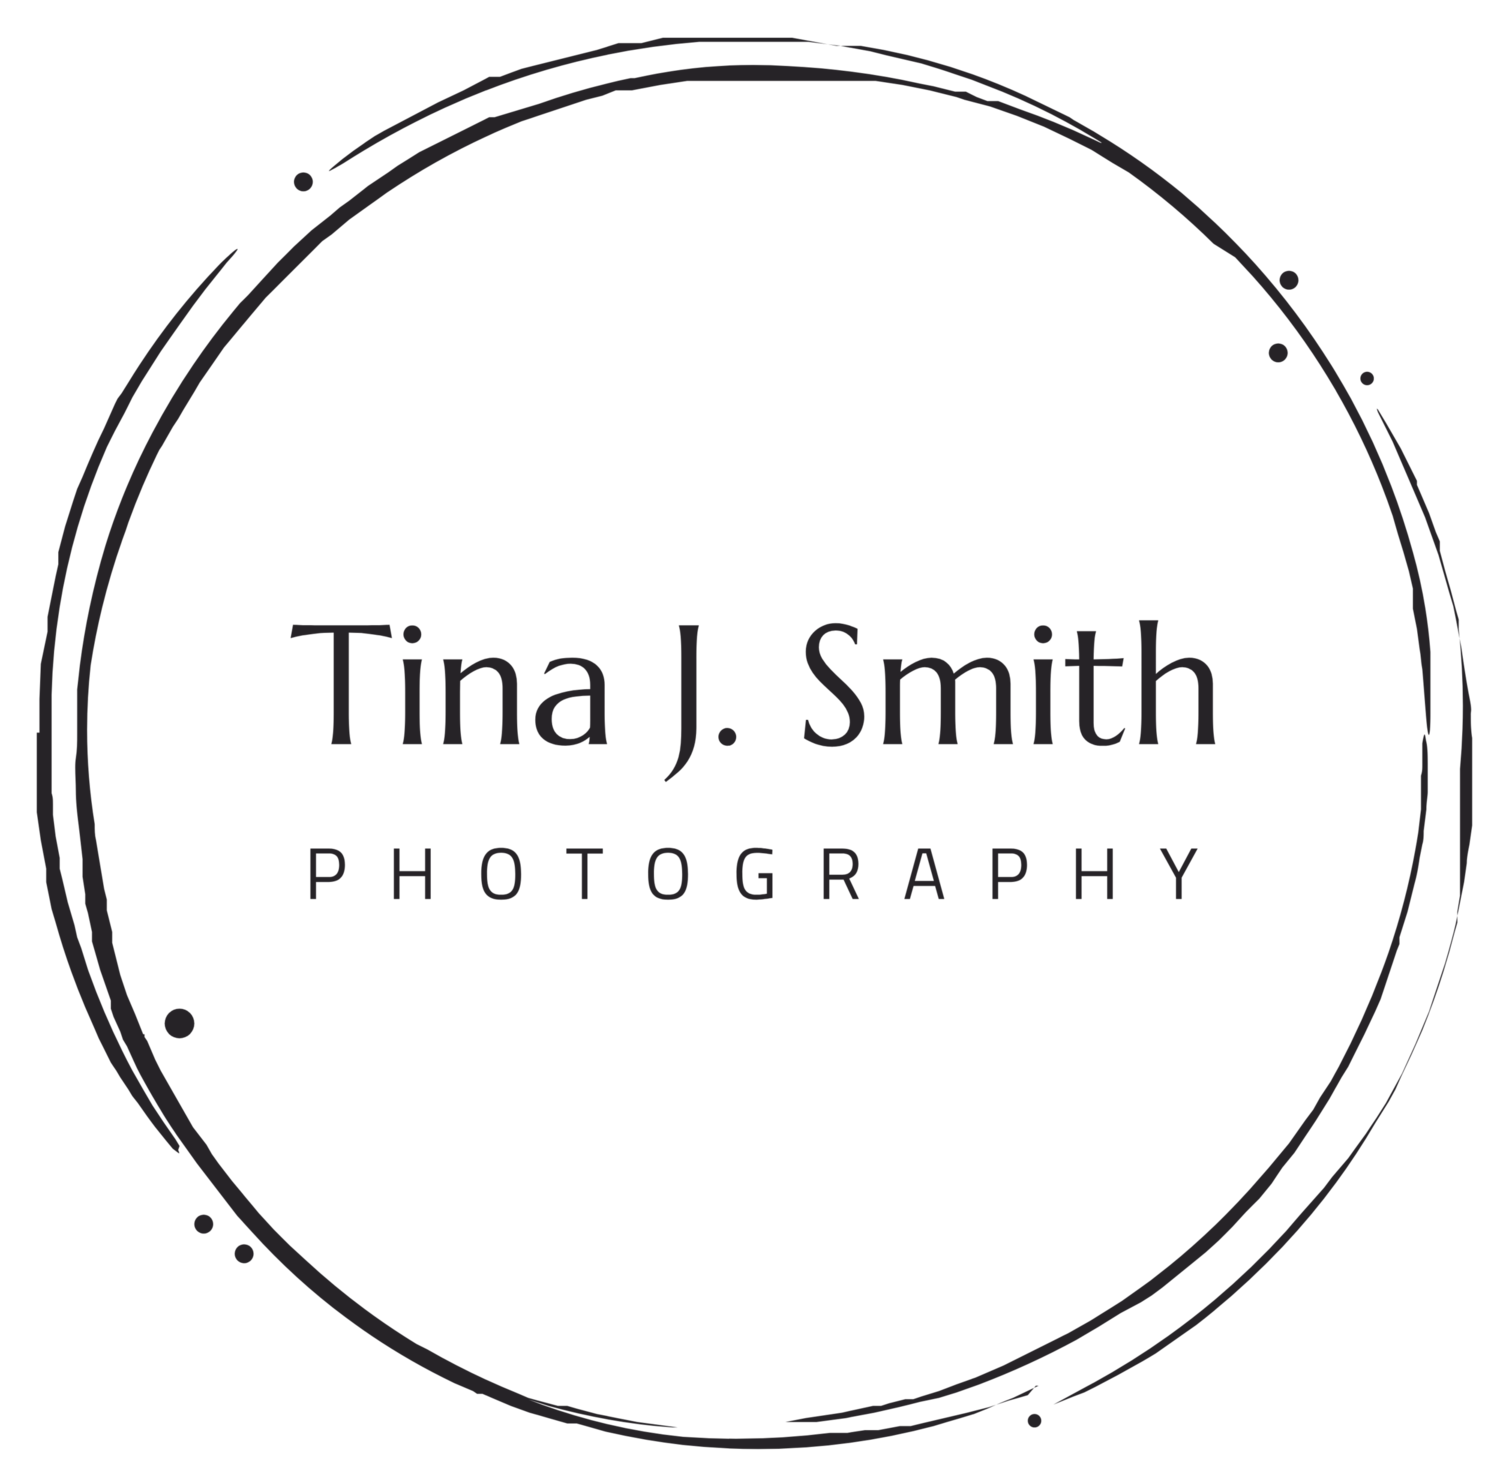 Tina J. Smith Photography